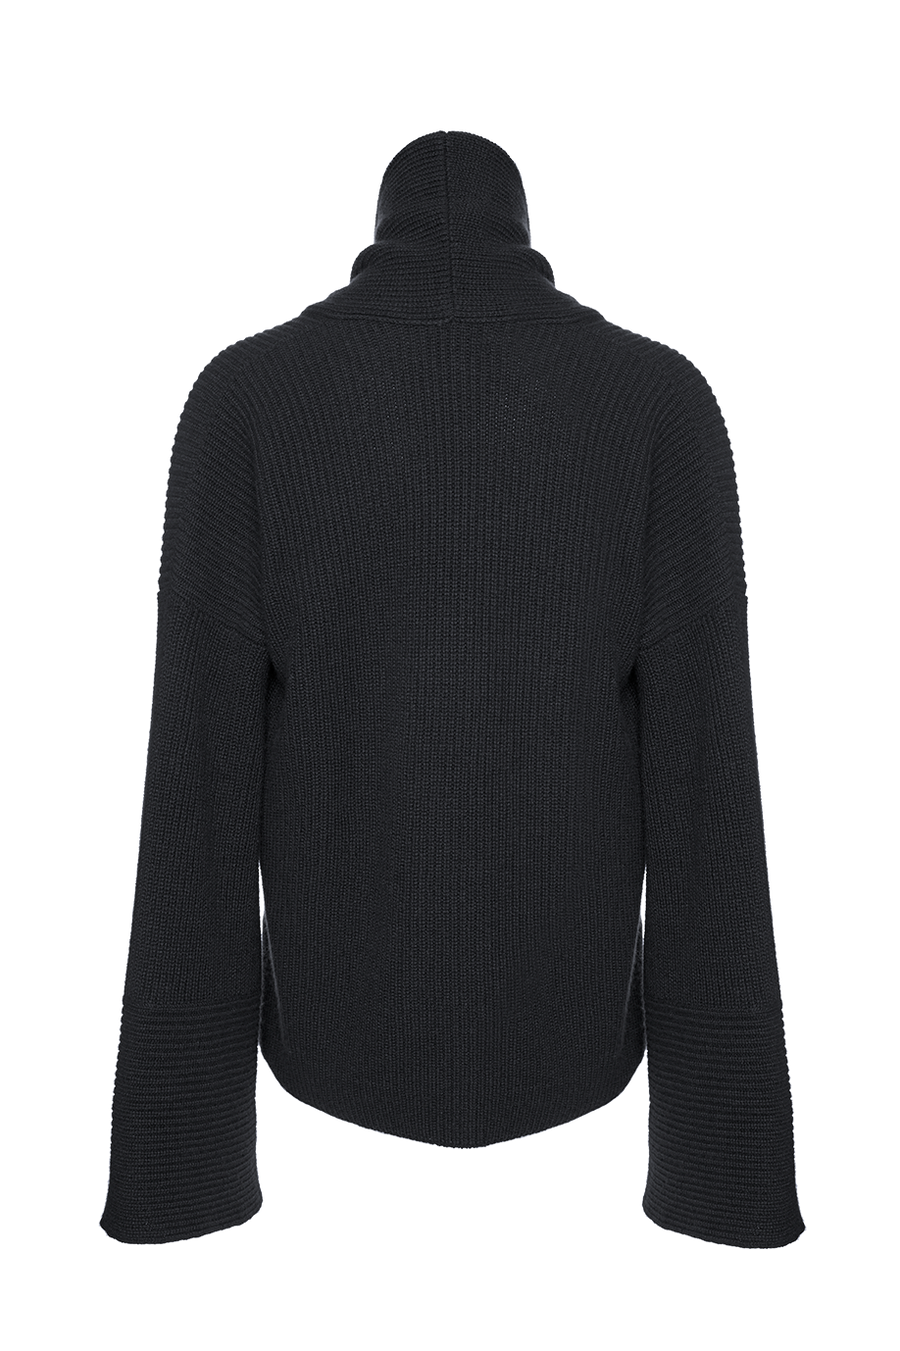 THE CORTINA CASHMERE BLEND TURTLE NECK SWEATER